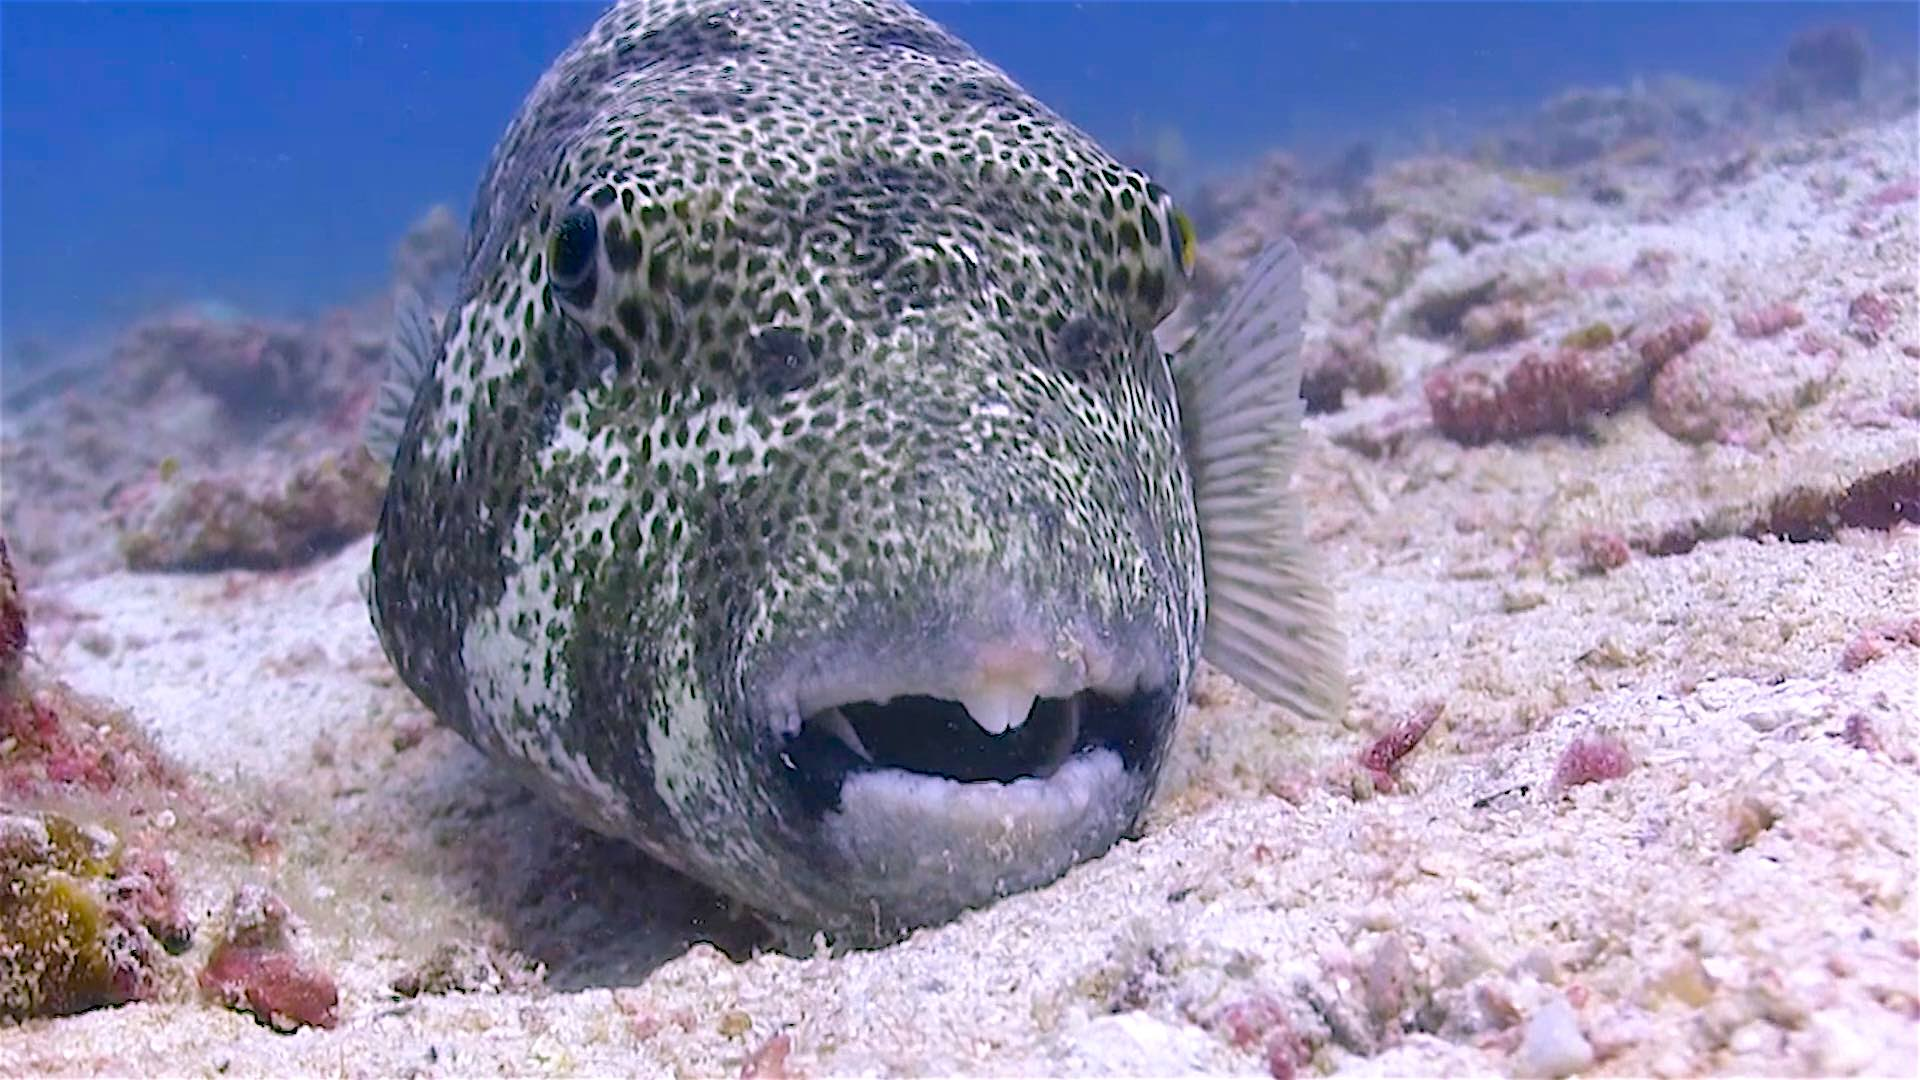 www.thefunkyturtle.com Mango Bay dive site koh tao giant puffer fish